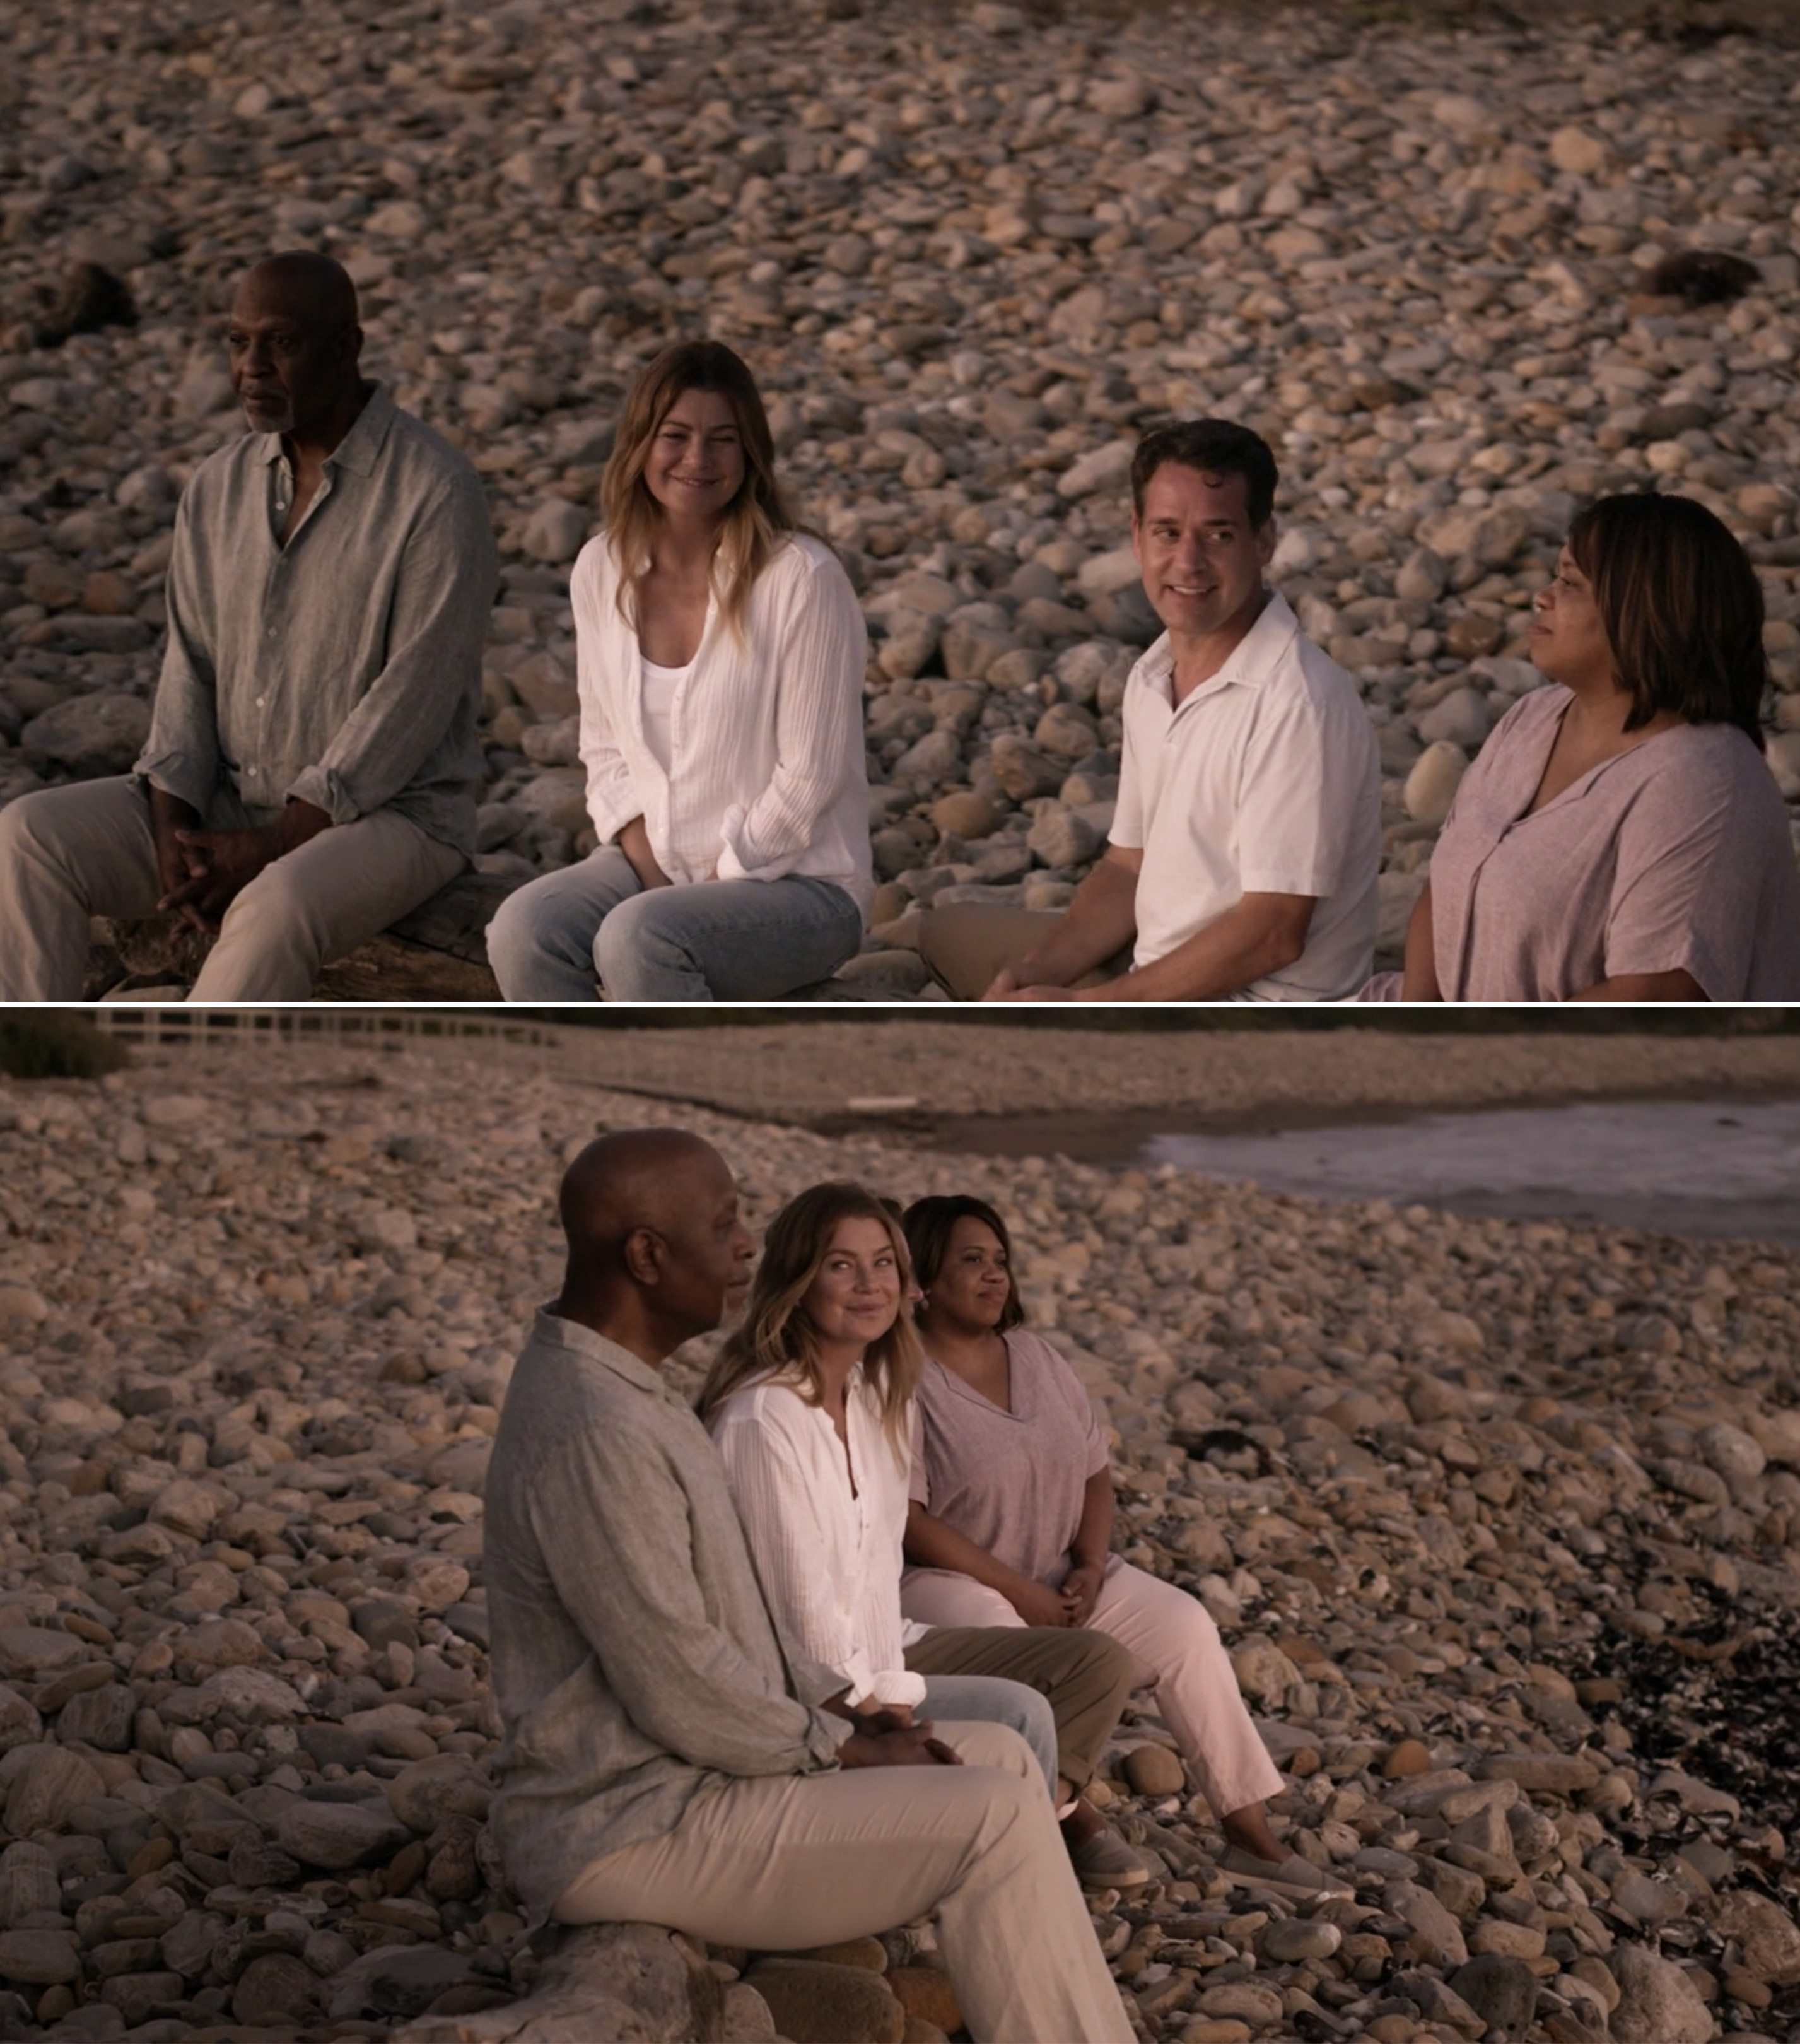 Richard, Meredith, George, and Bailey sitting on a log on the beach